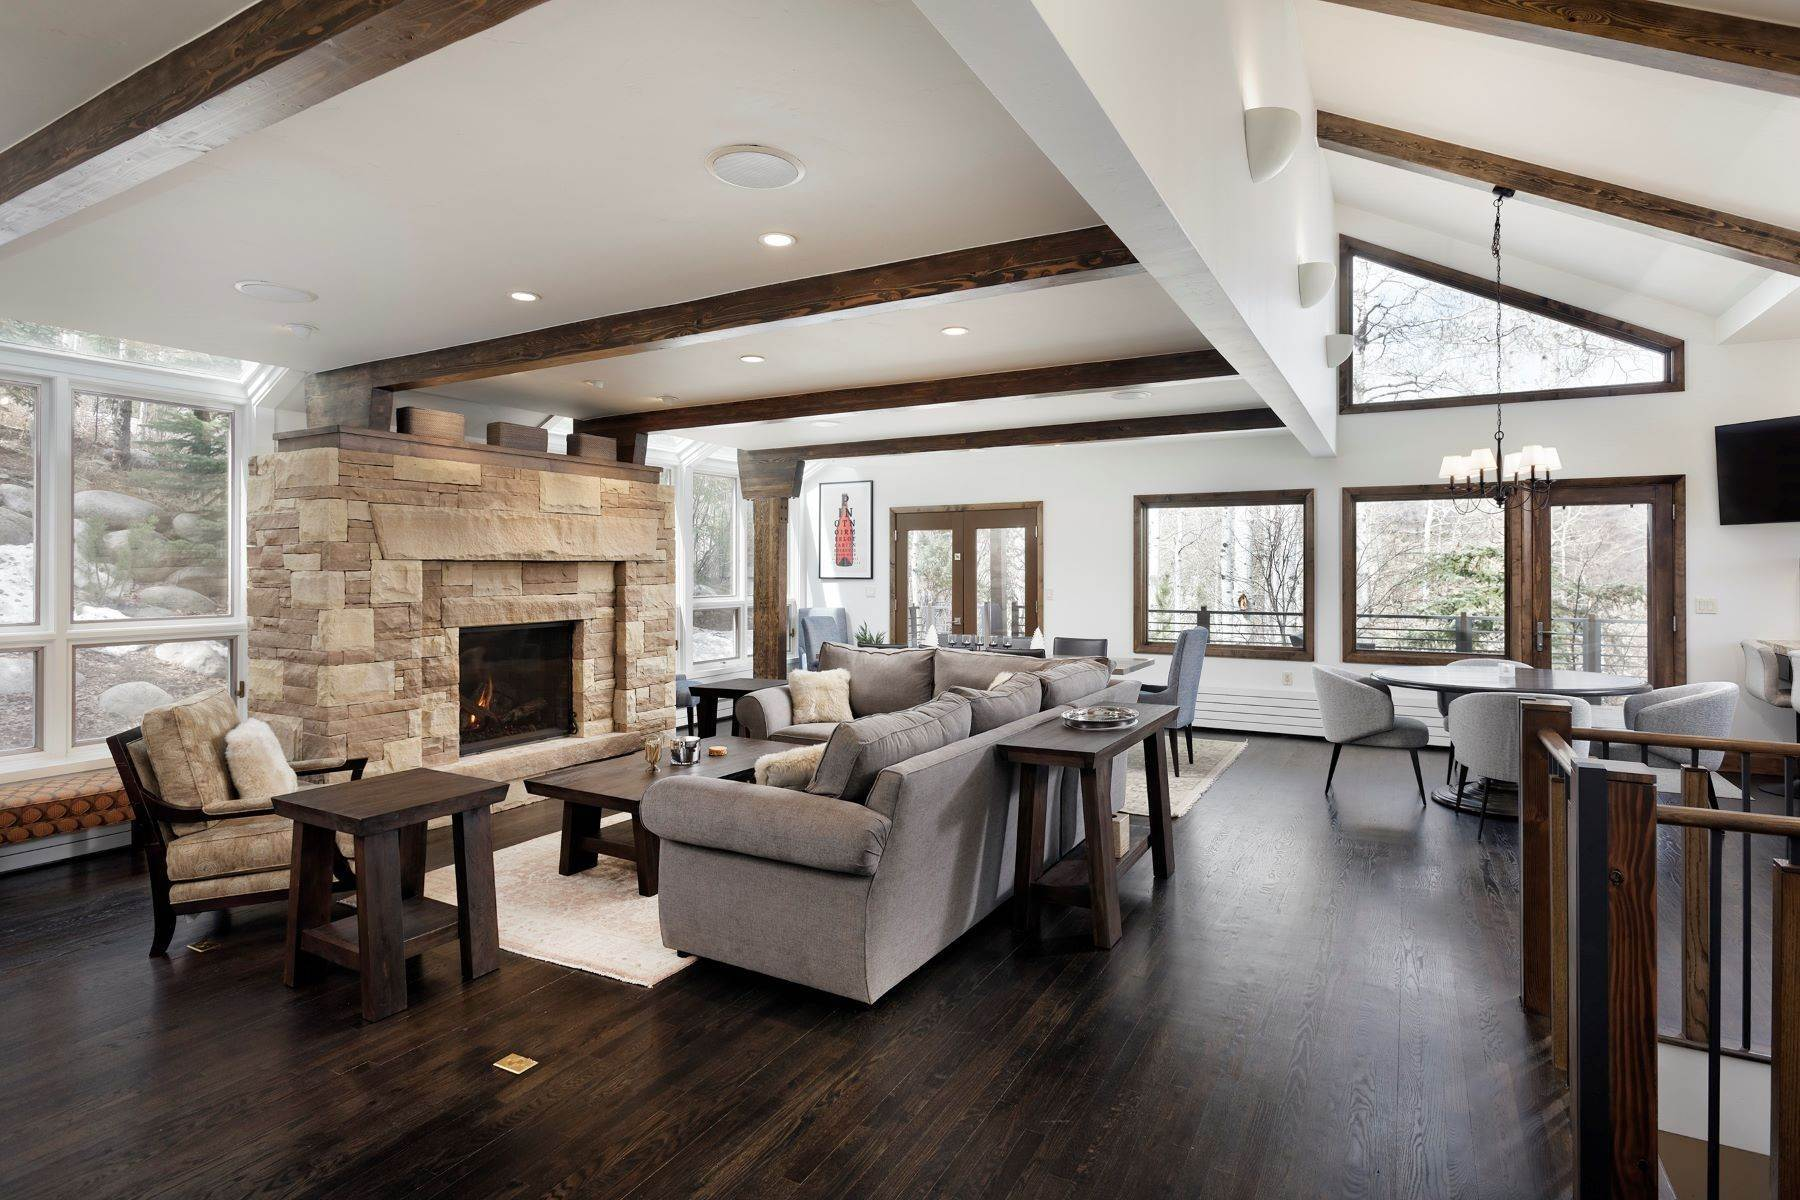 Single Family Homes for Sale at Ridge Run 342 Ridge Road Snowmass Village, Colorado 81615 United States